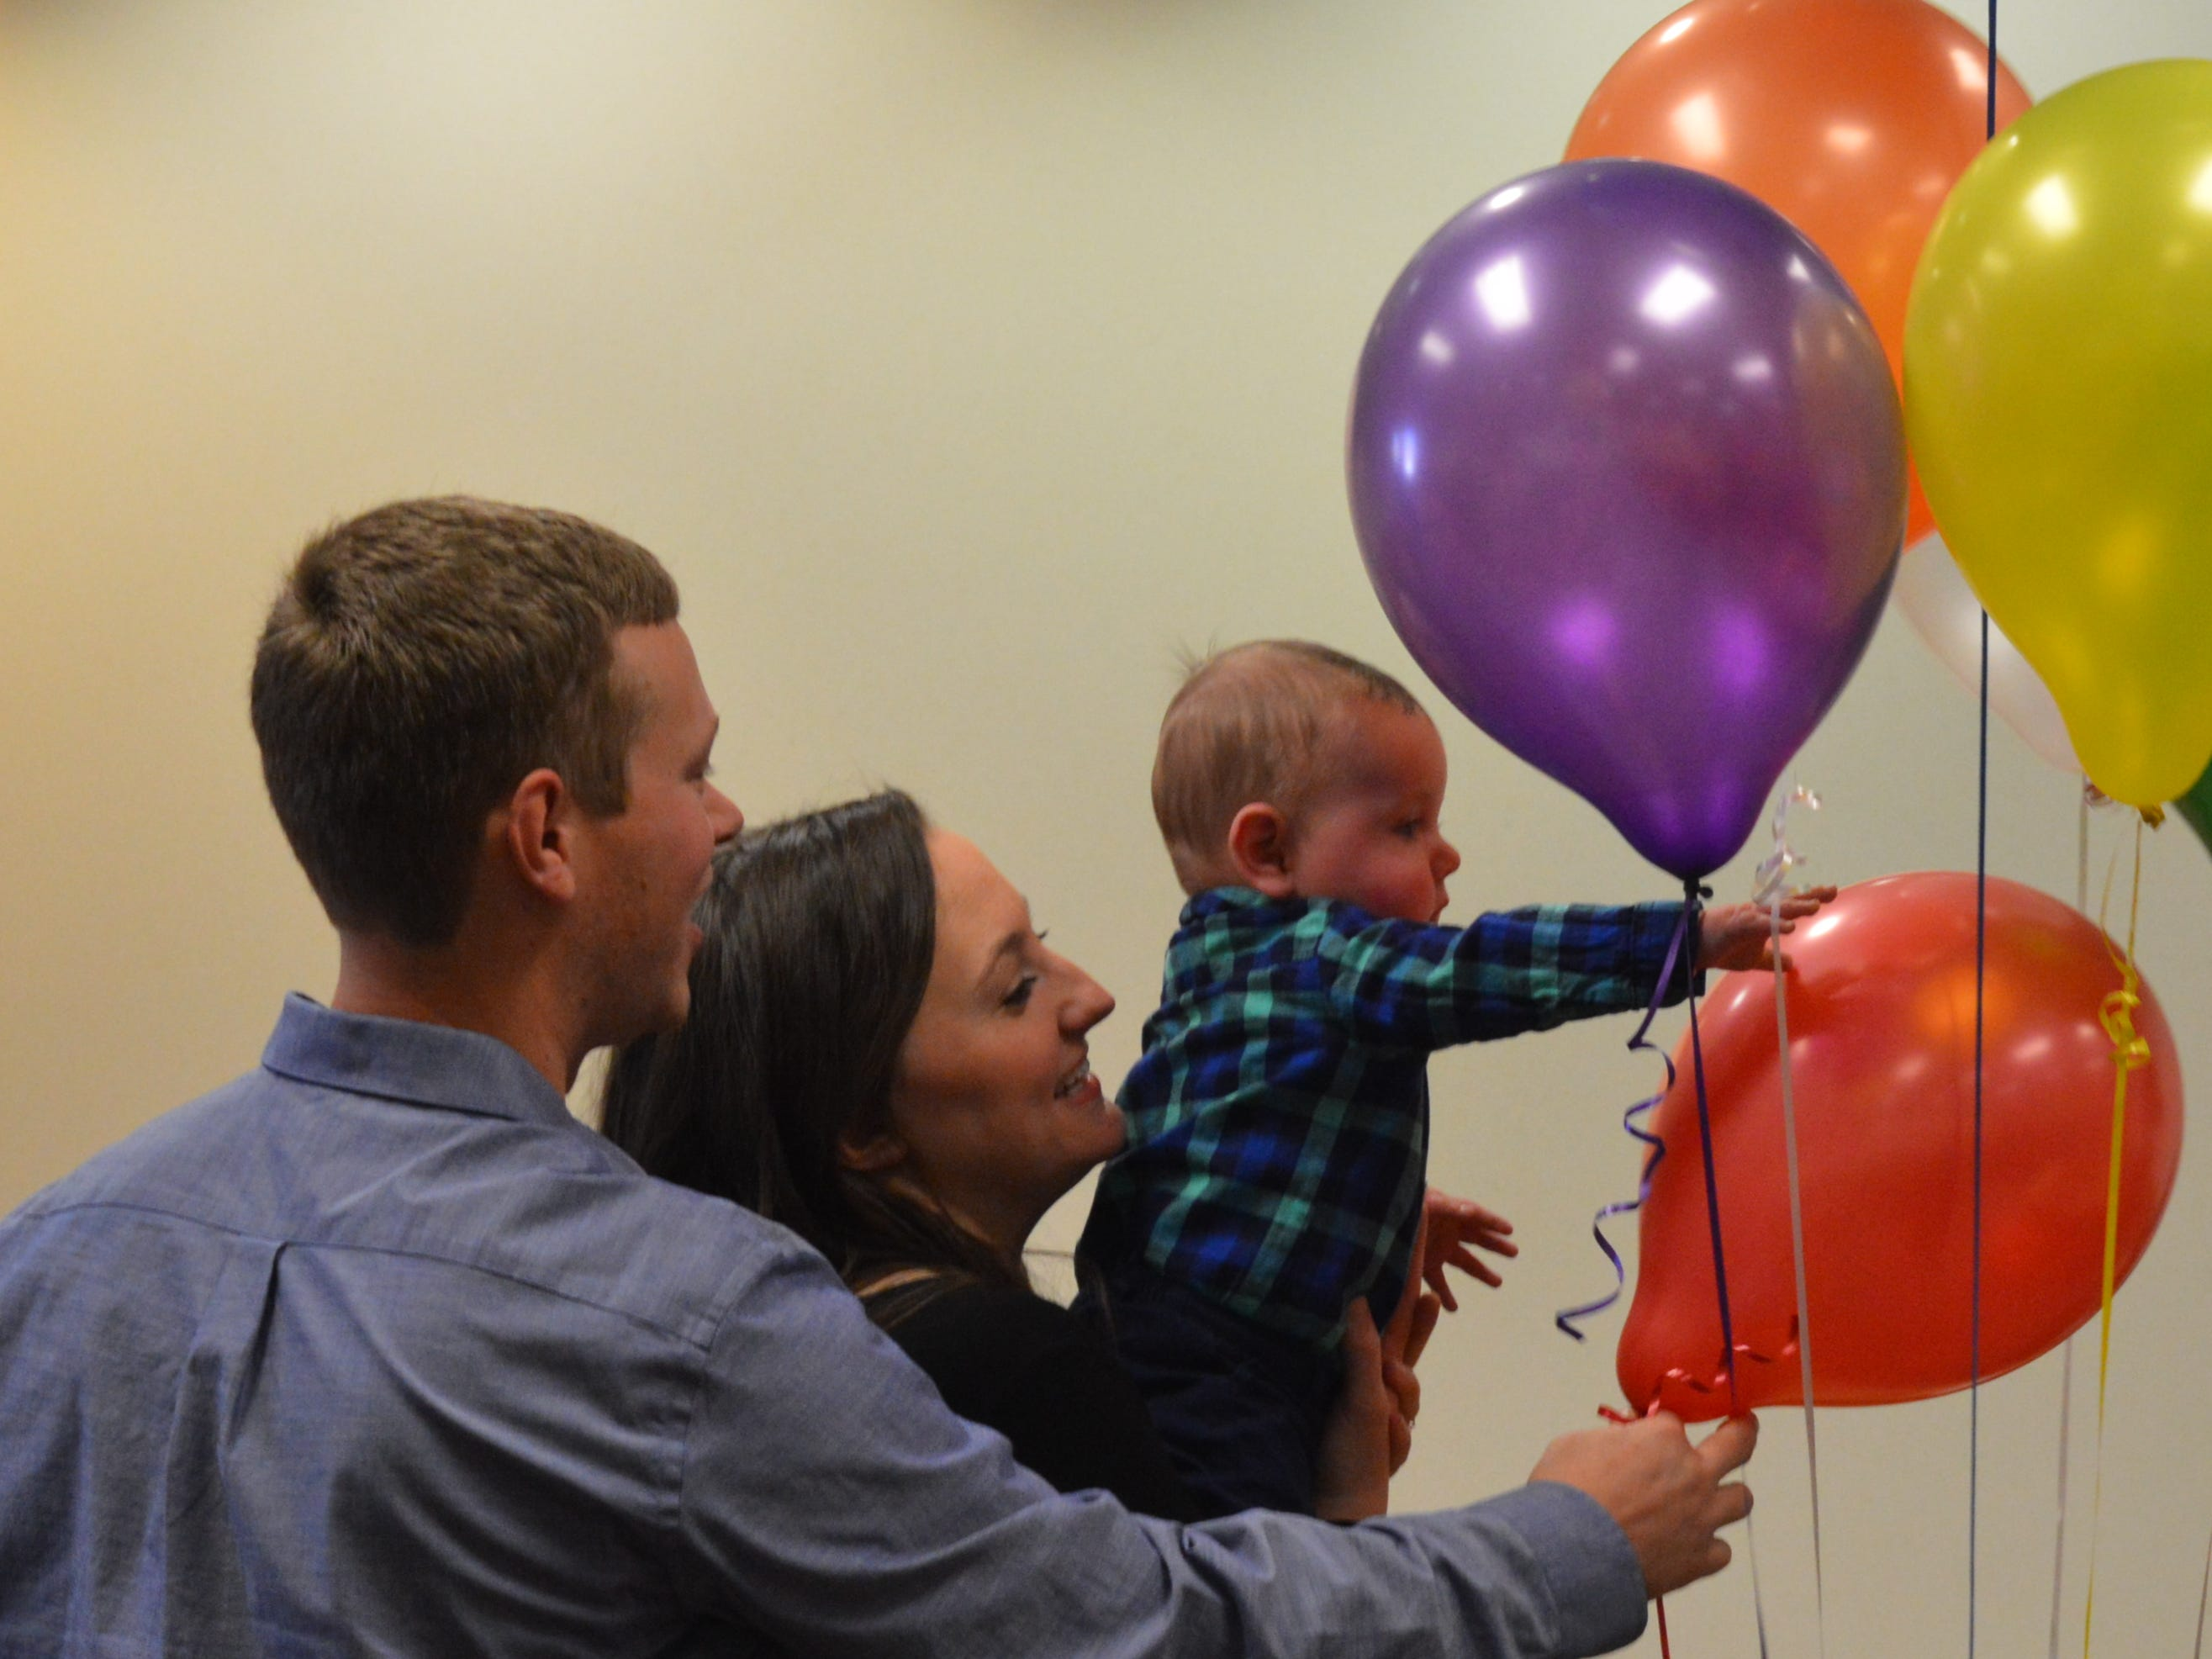 Newly adopted Wyatt Church plays with a balloon after Livingston County Chief Judge Miriam Cavanaugh finalized his adoption on Nov. 20, 2018.